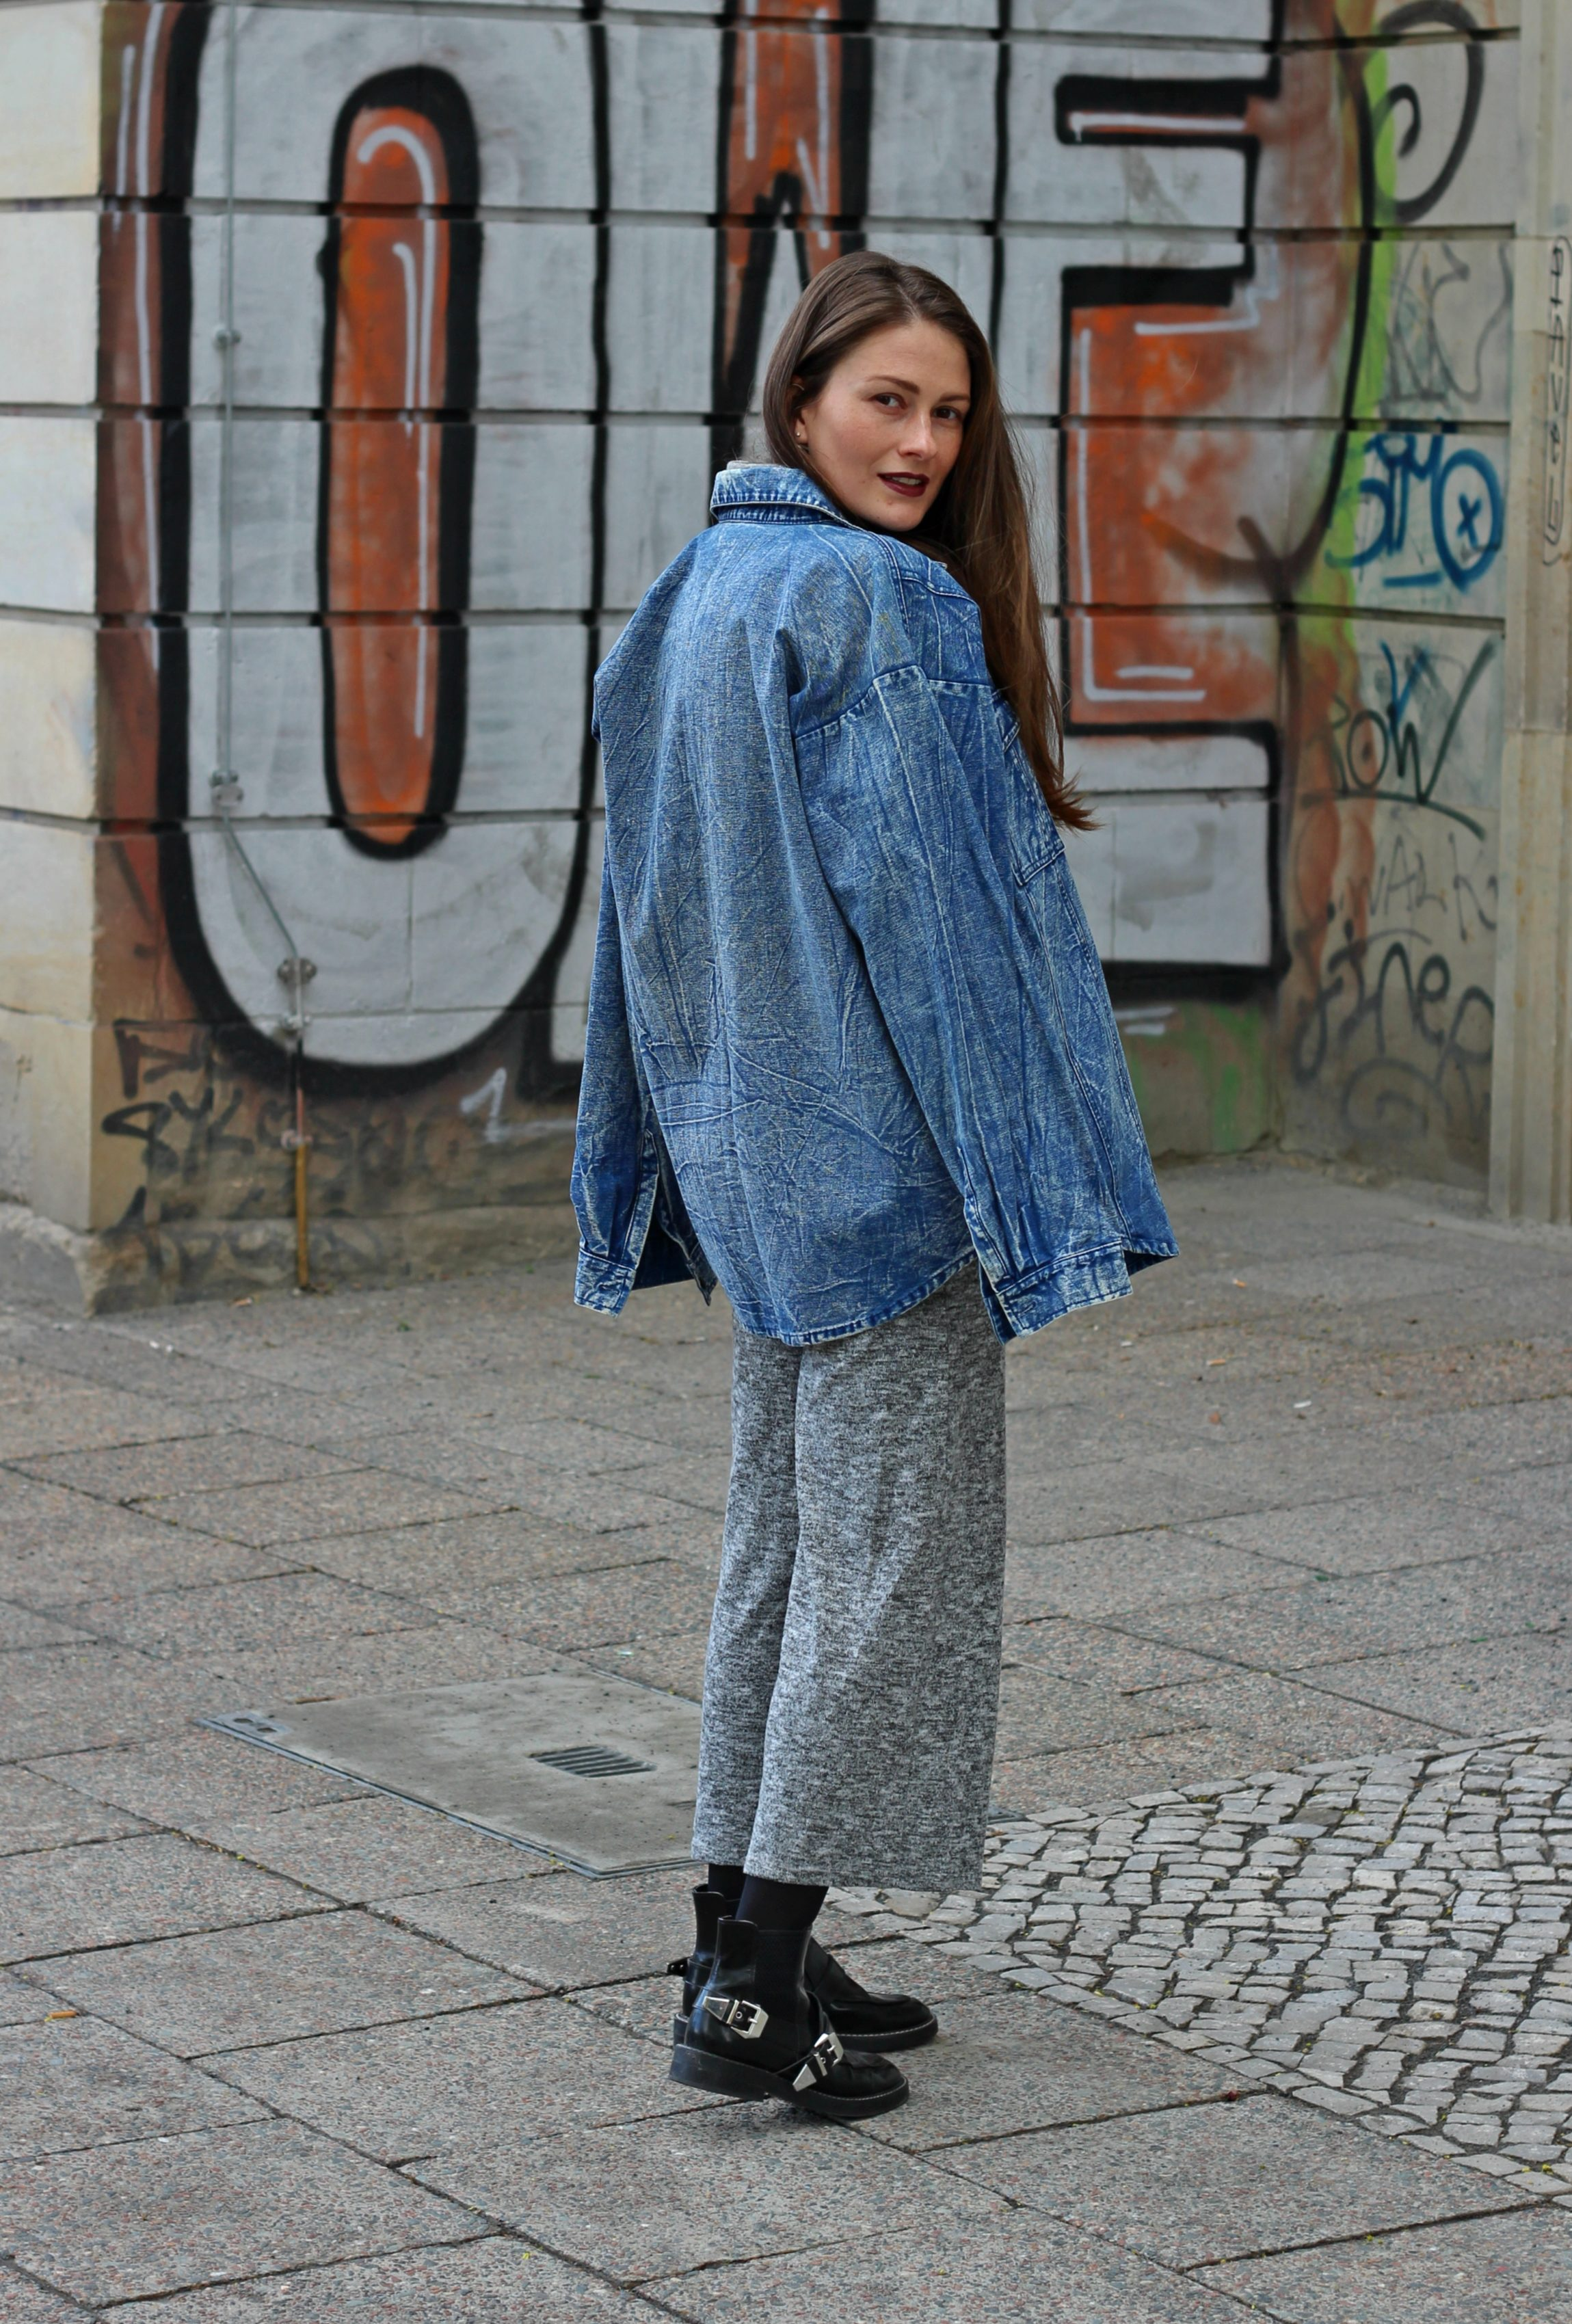 annaporter-denim-jacket-culottes-chelsea-boots-90's-outfit-style-fashion-blogger-9